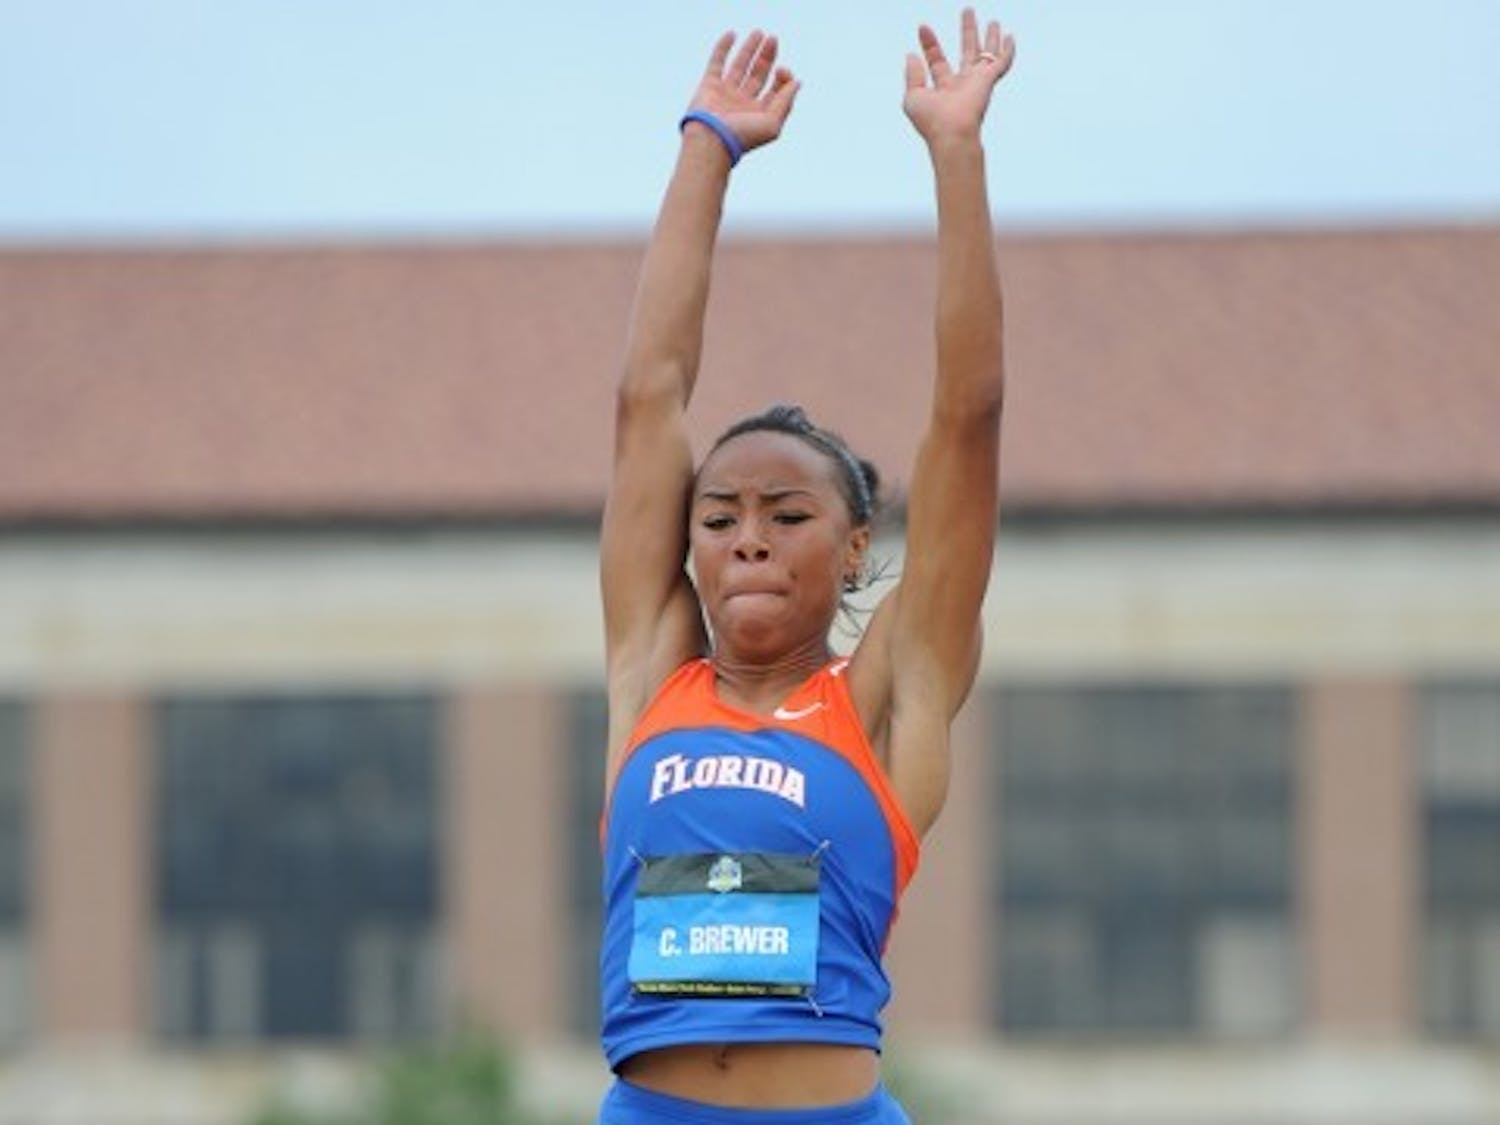 Ciarra Brewer competes in the triple jump at the Southeastern Conference Outdoor Championships on May 13, 2012.